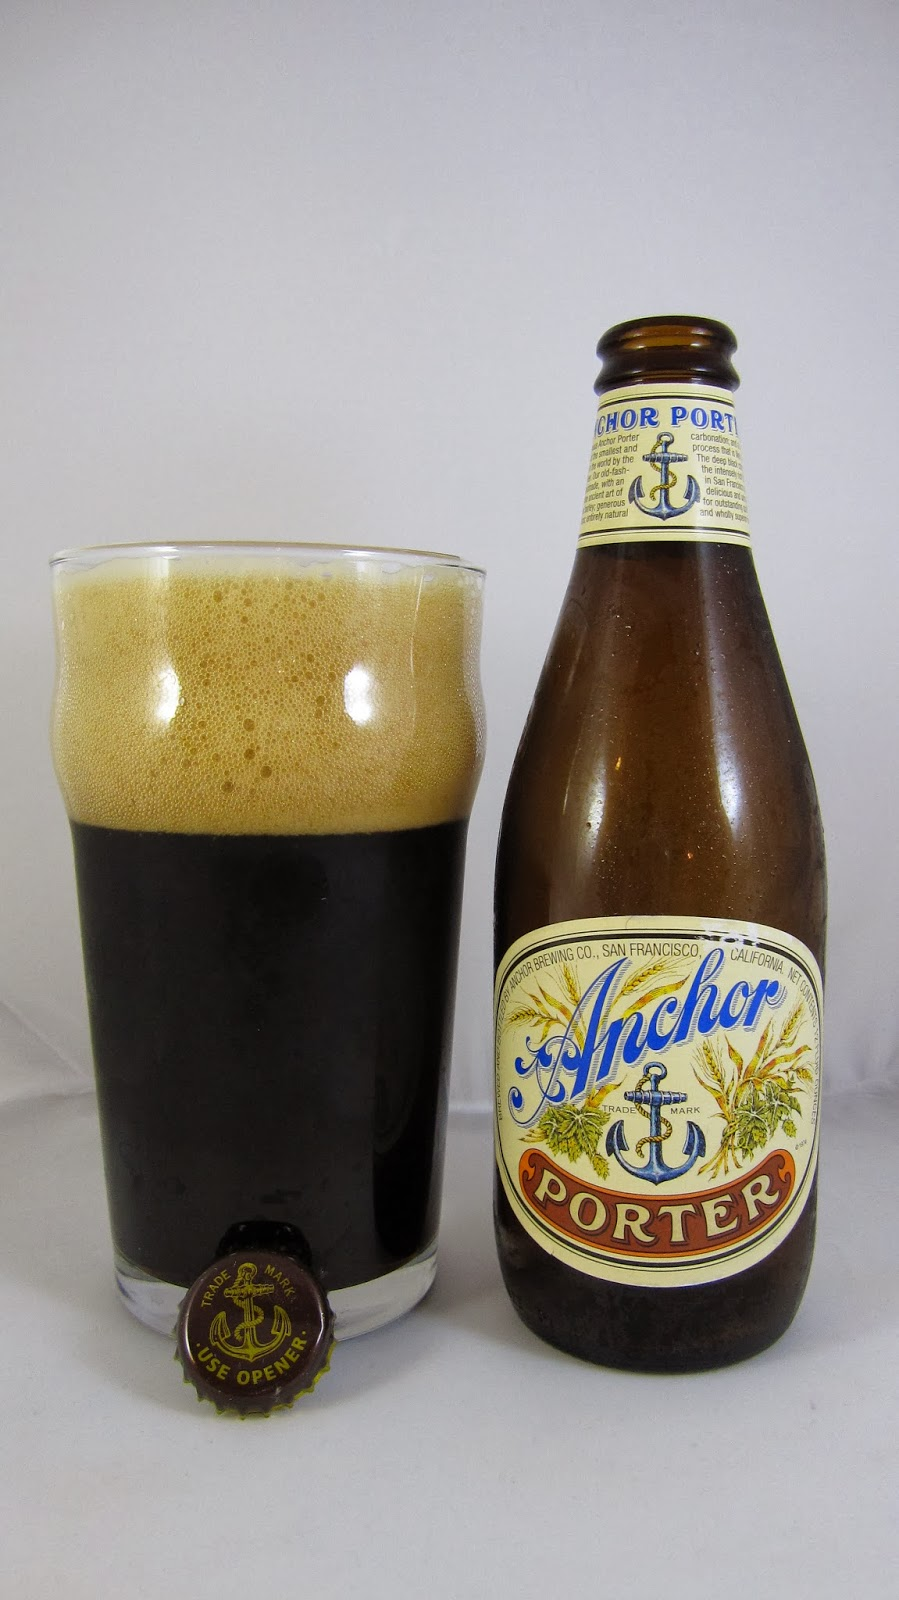 Le Meilleur Chad Z Beer Reviews Anchor Porter Ce Mois Ci